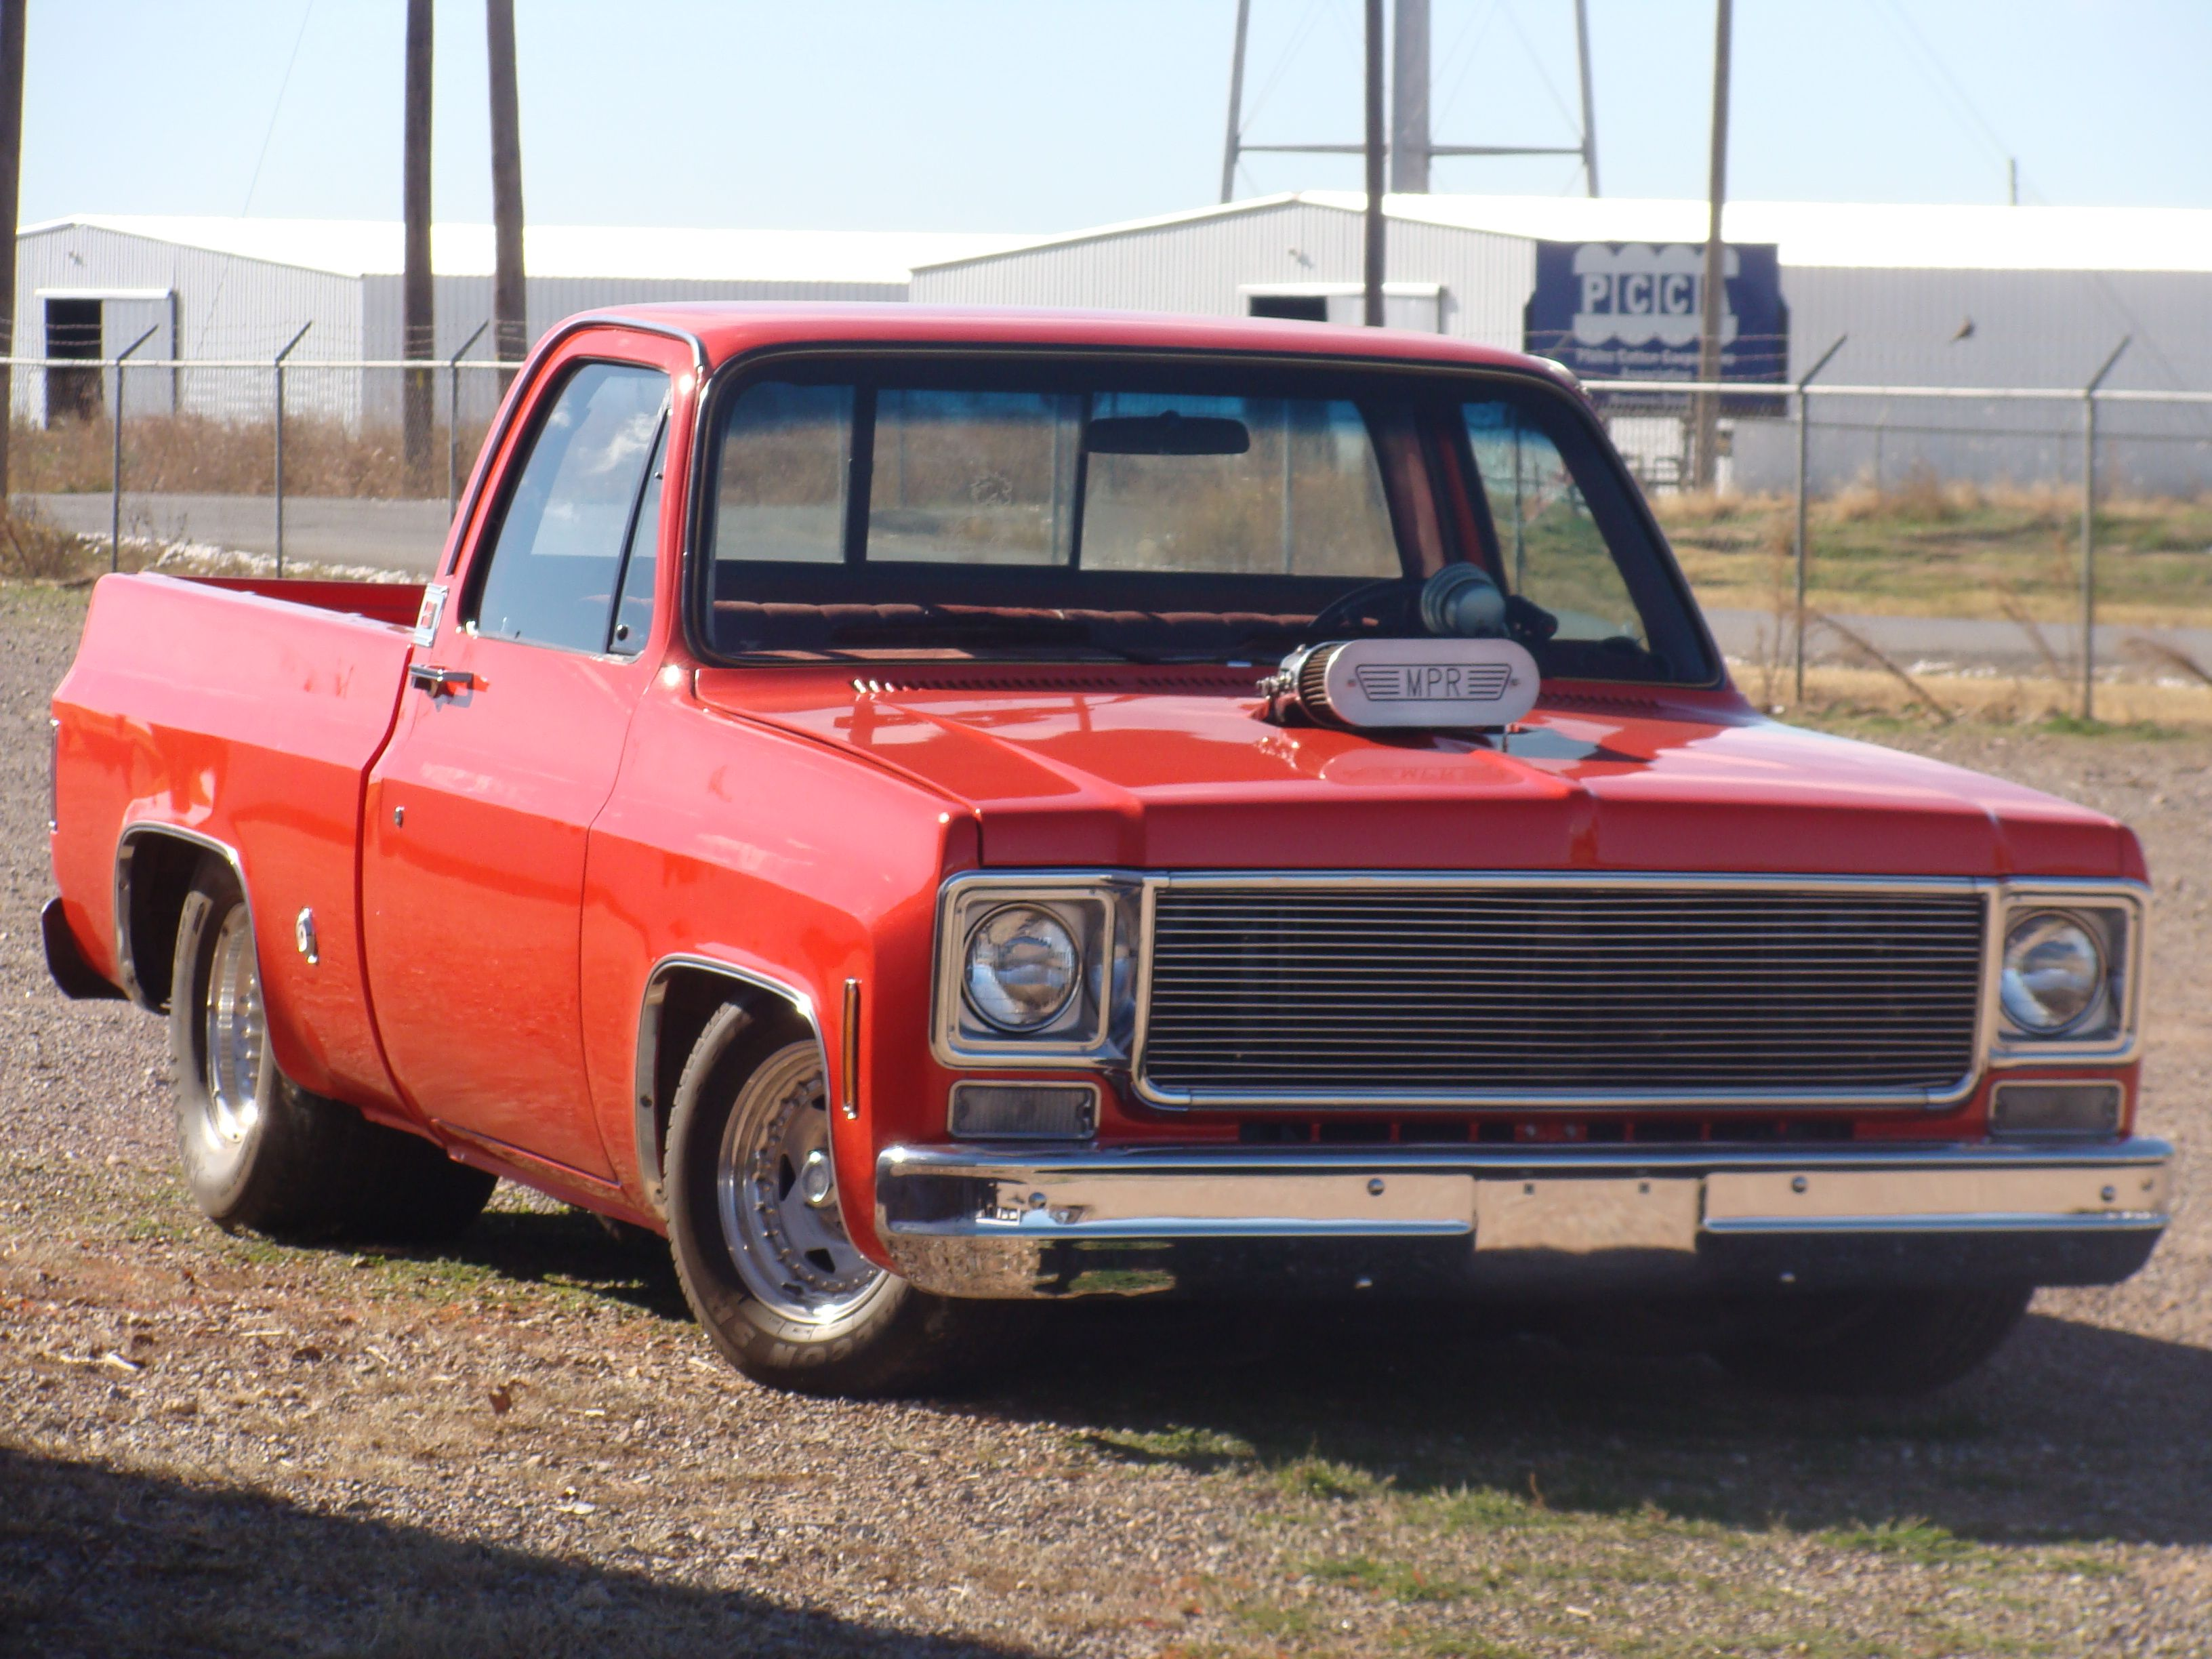 1975 Chevy C10 Pro Street Truck At Work With Images Trucks